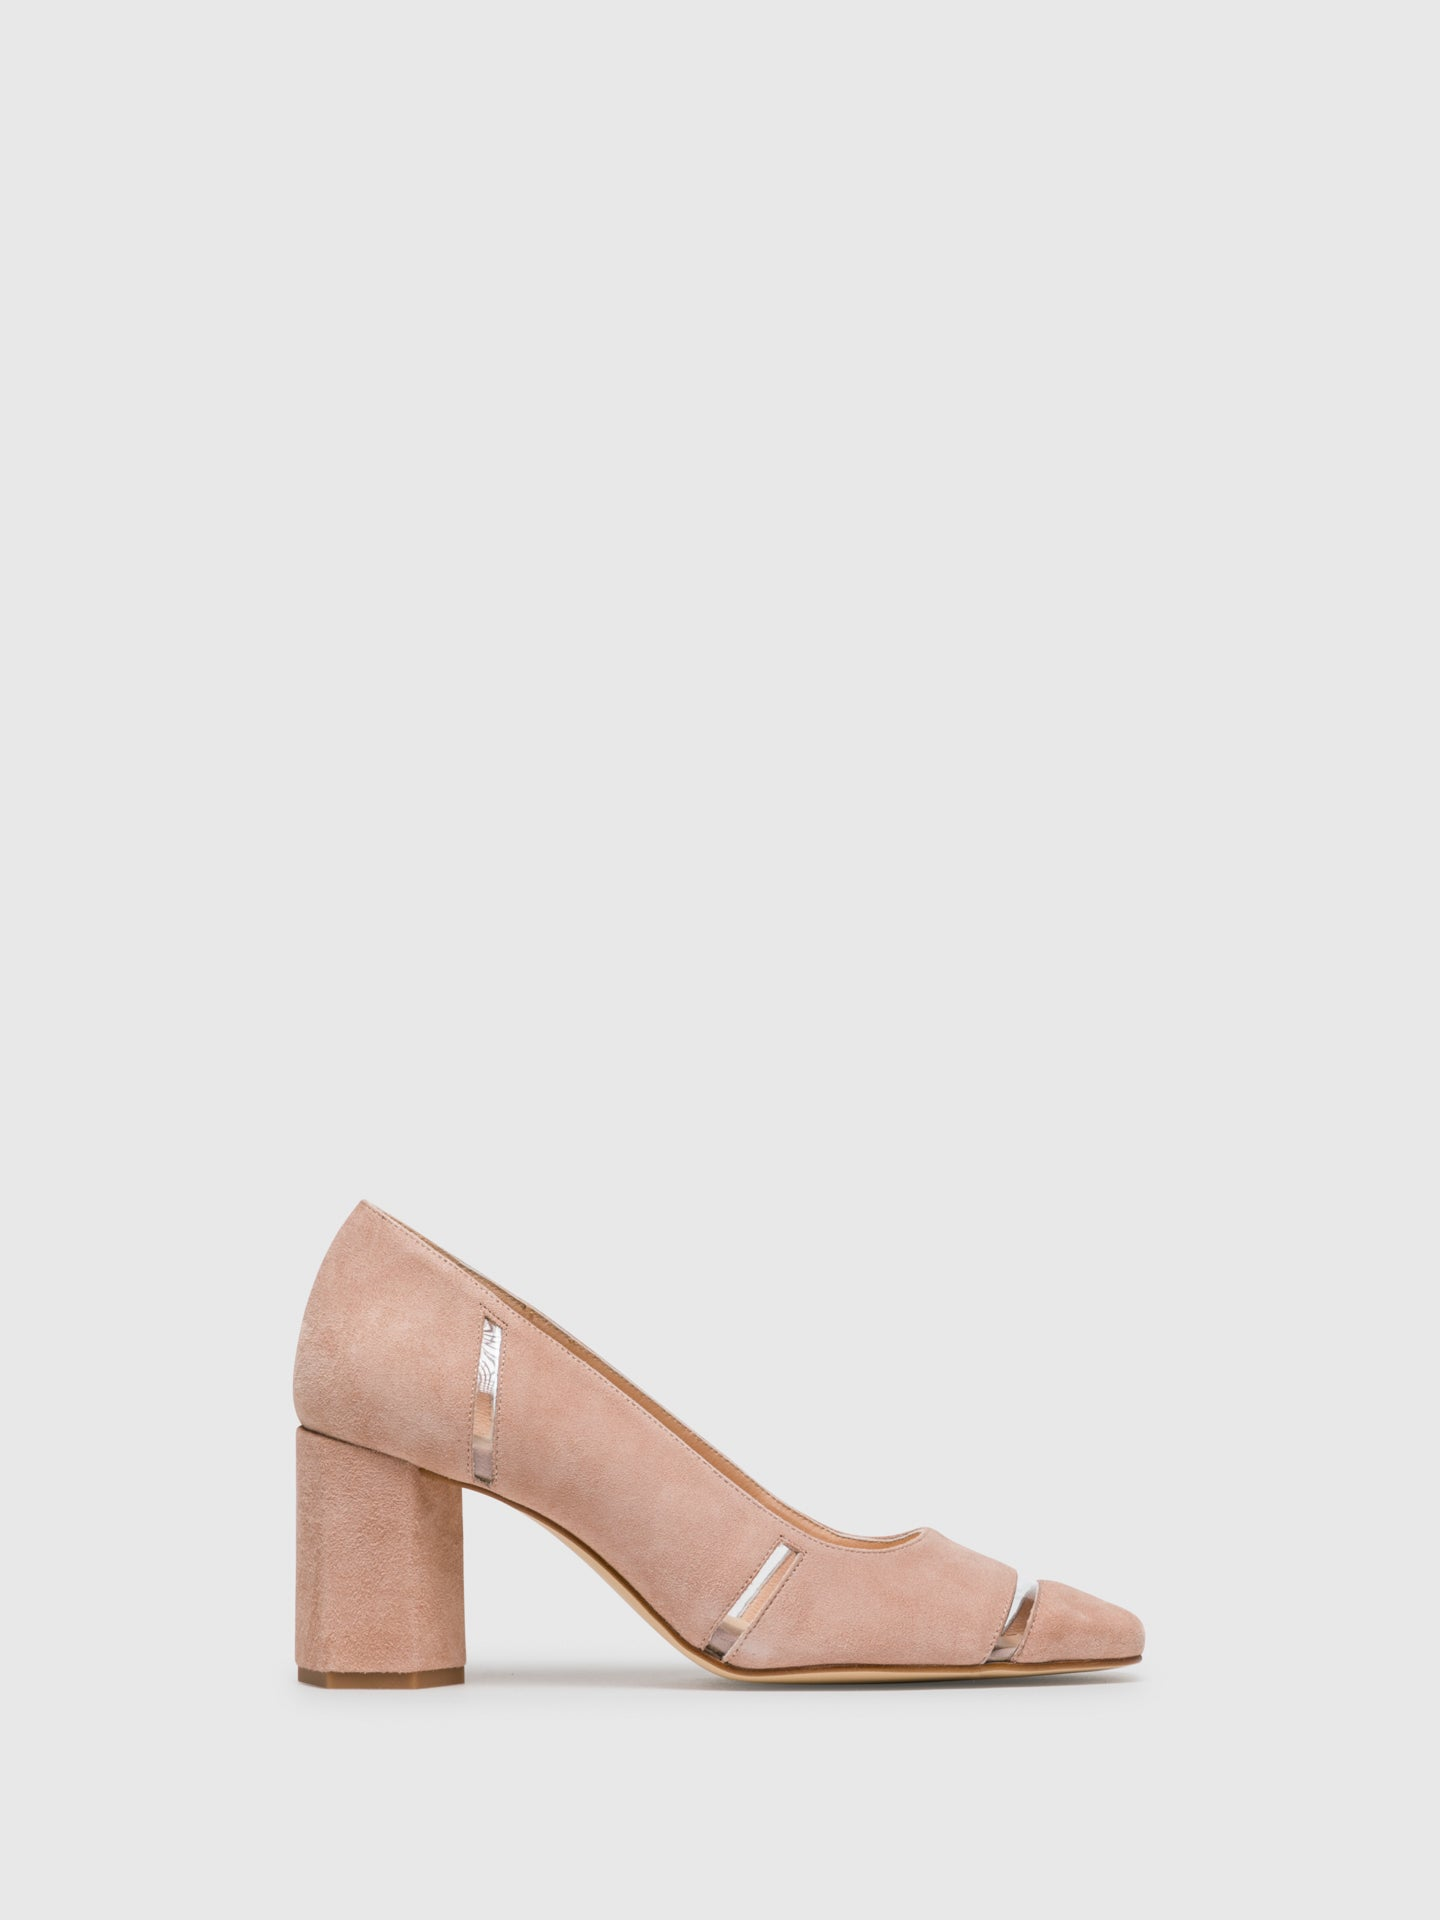 Sofia Costa Pink Square Toe Pumps Shoes